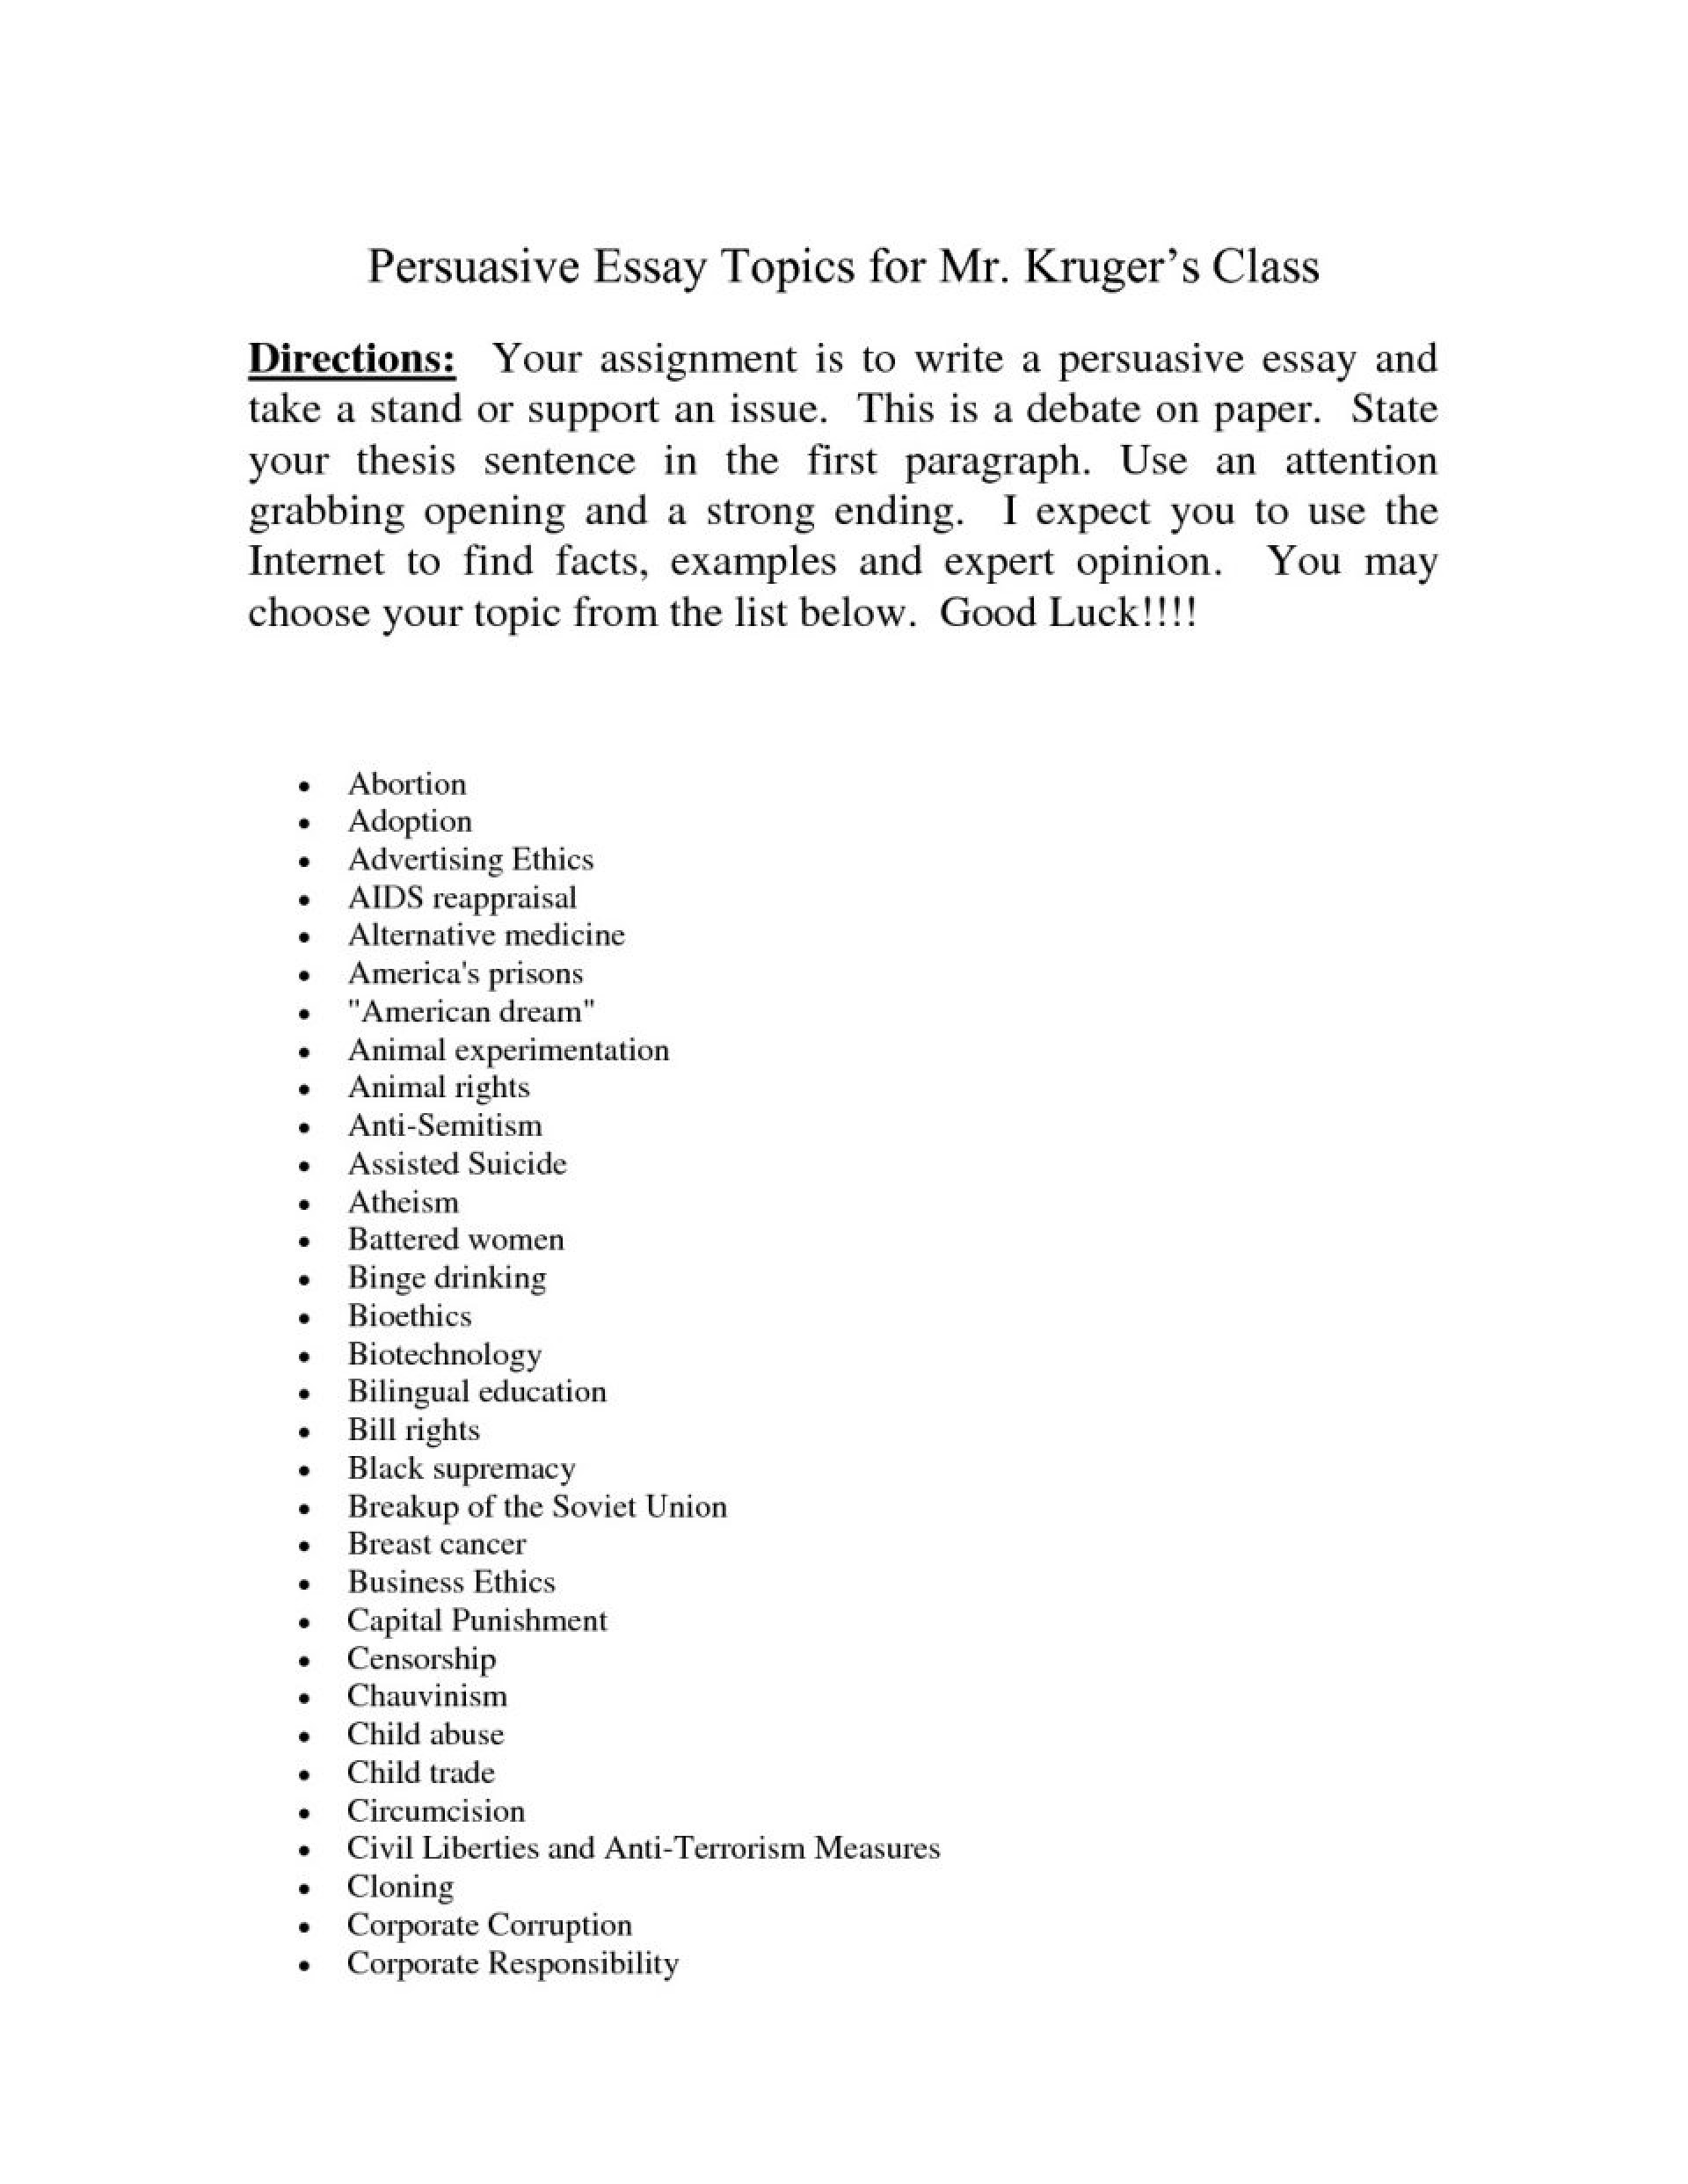 016 Research Paper Interesting Topics Topic For Essay Barca Fontanacountryinn Within Good Persuasive Narrative To Write Abo Easy About Personal Descriptive Surprising In History Papers Scientific High School Students Us 1920